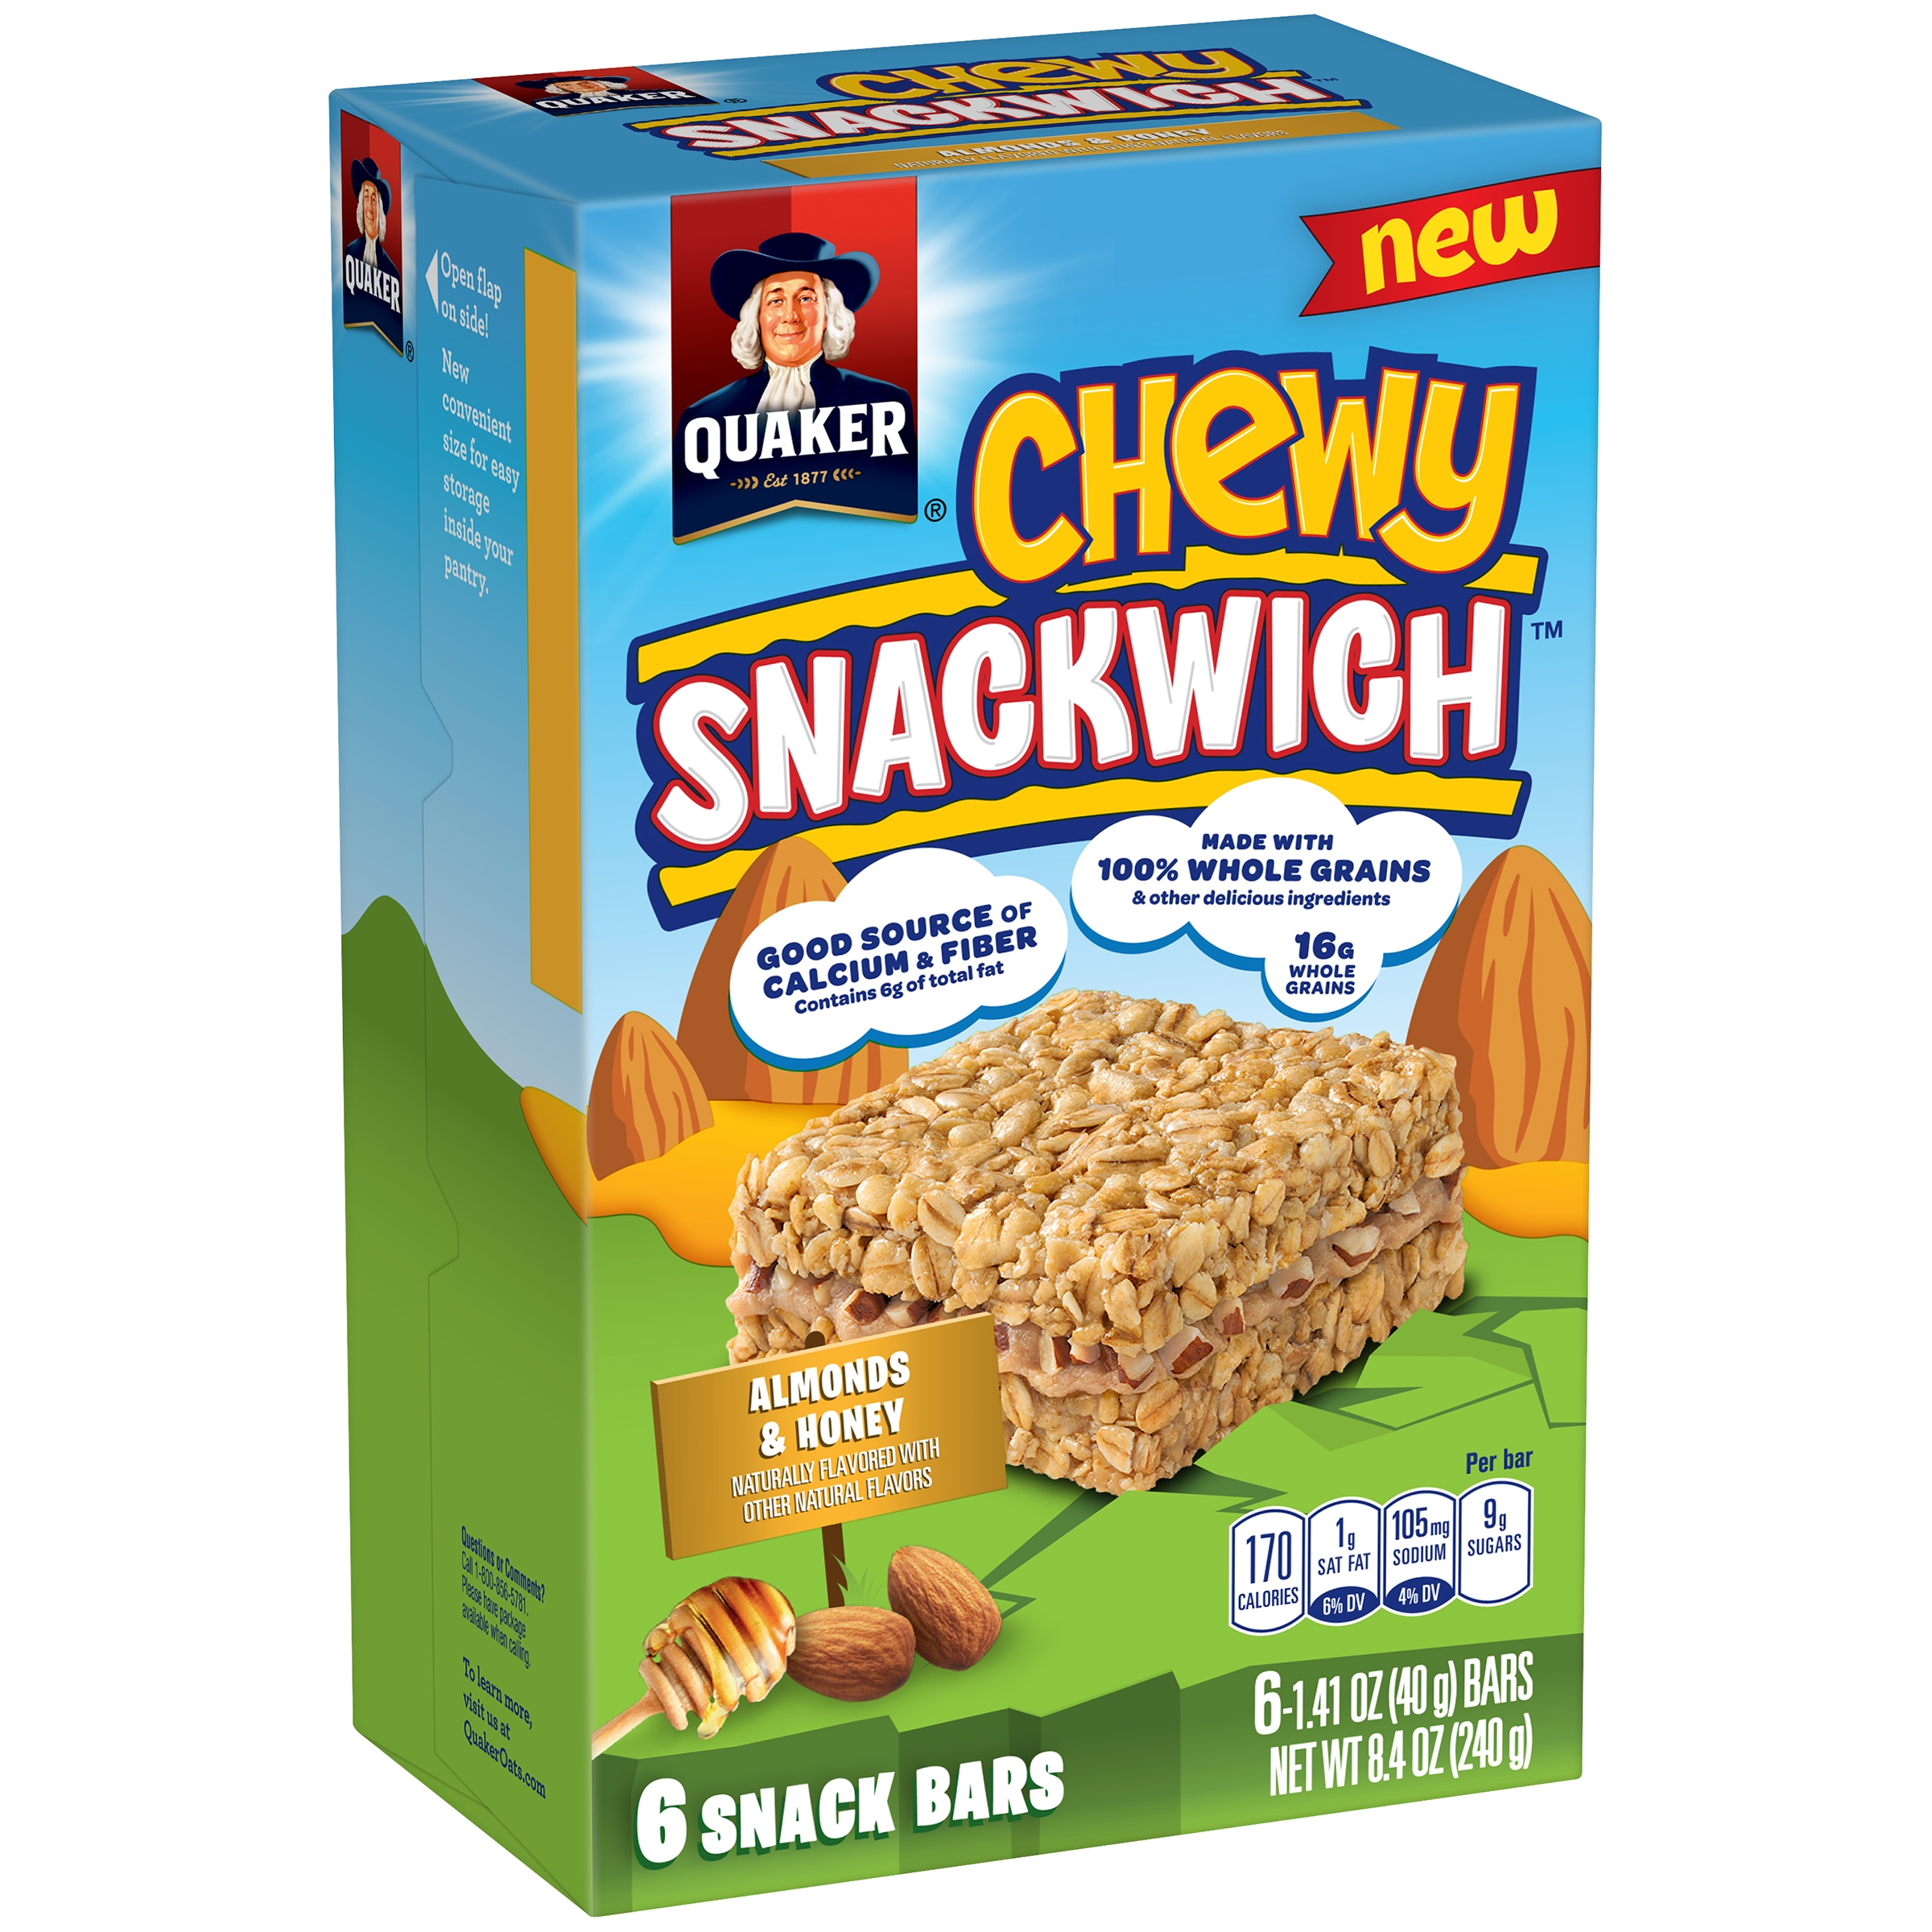 Quaker Chewy Snackwich Almonds & Honey Snack Bars